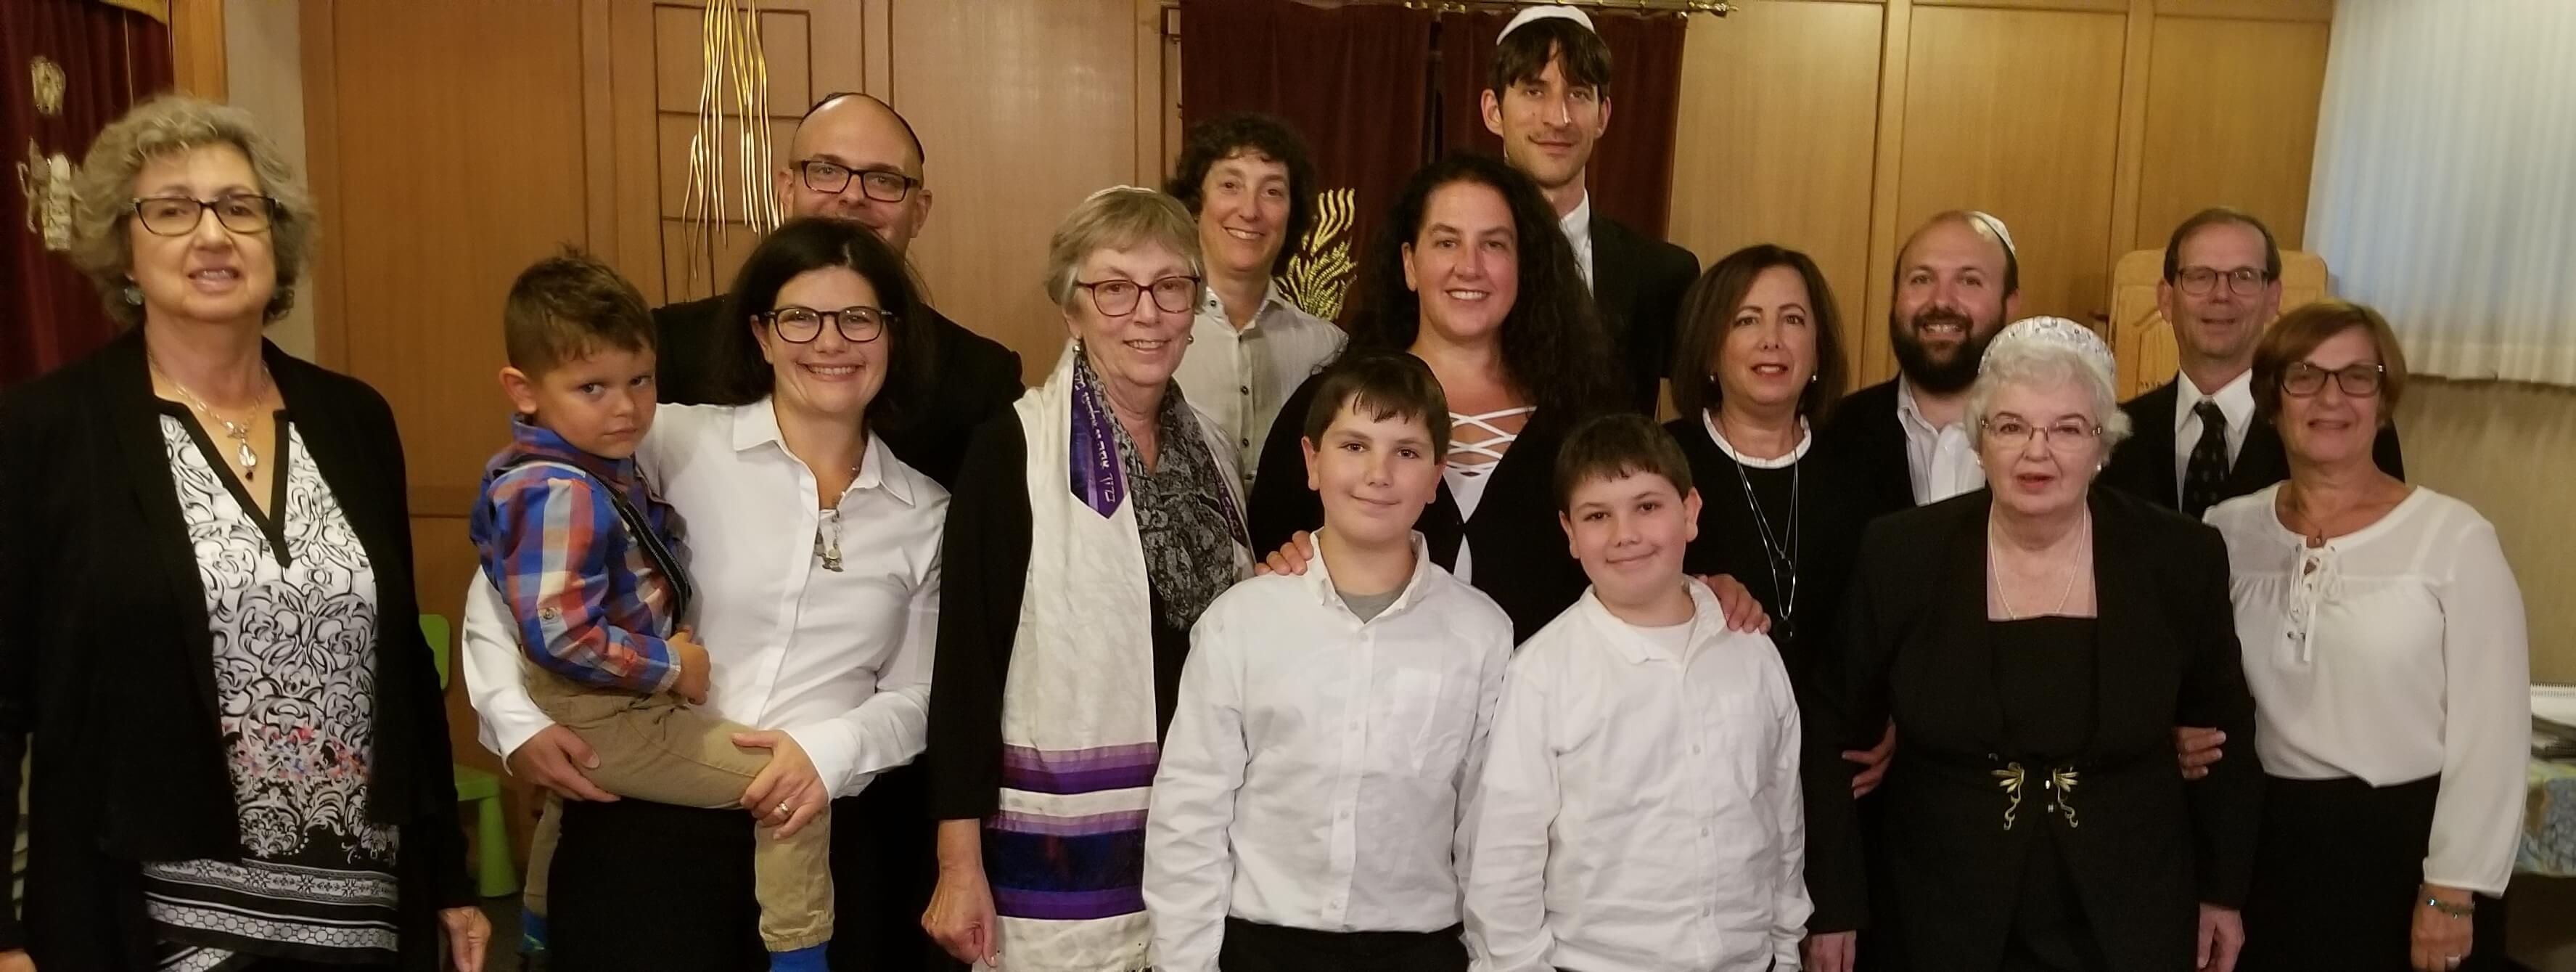 2018 Shaar Shalom Choir